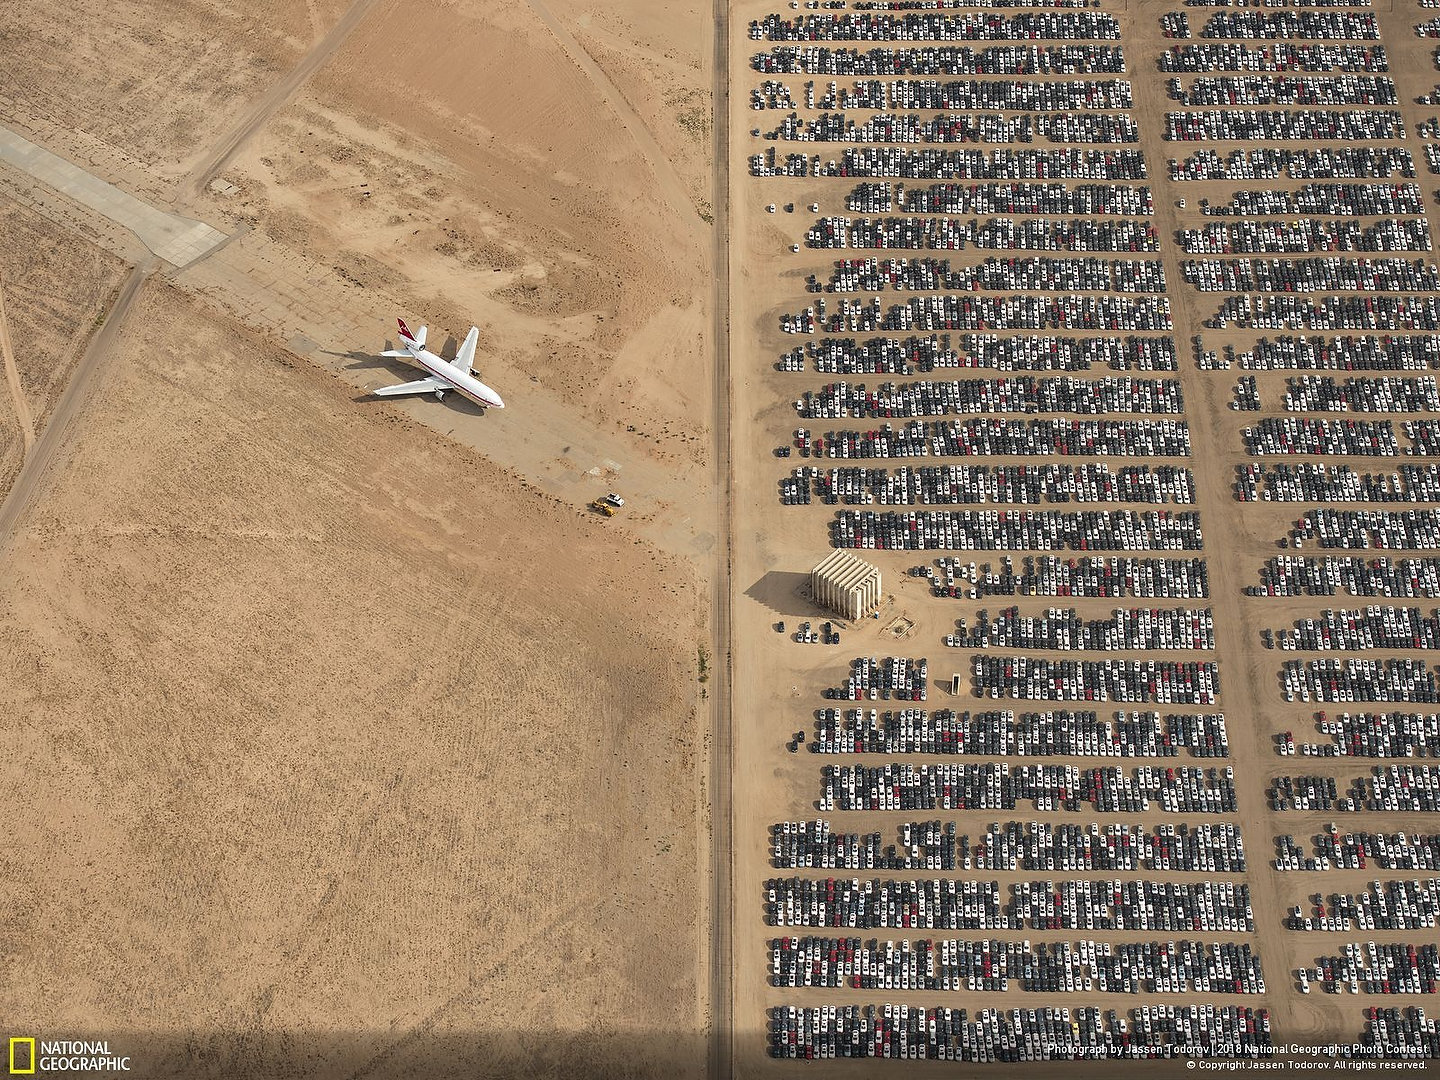 Volkswagen cimetière Victorville Californie Photo: Jassen Todorov / 2018 National Geographic Photo Contest